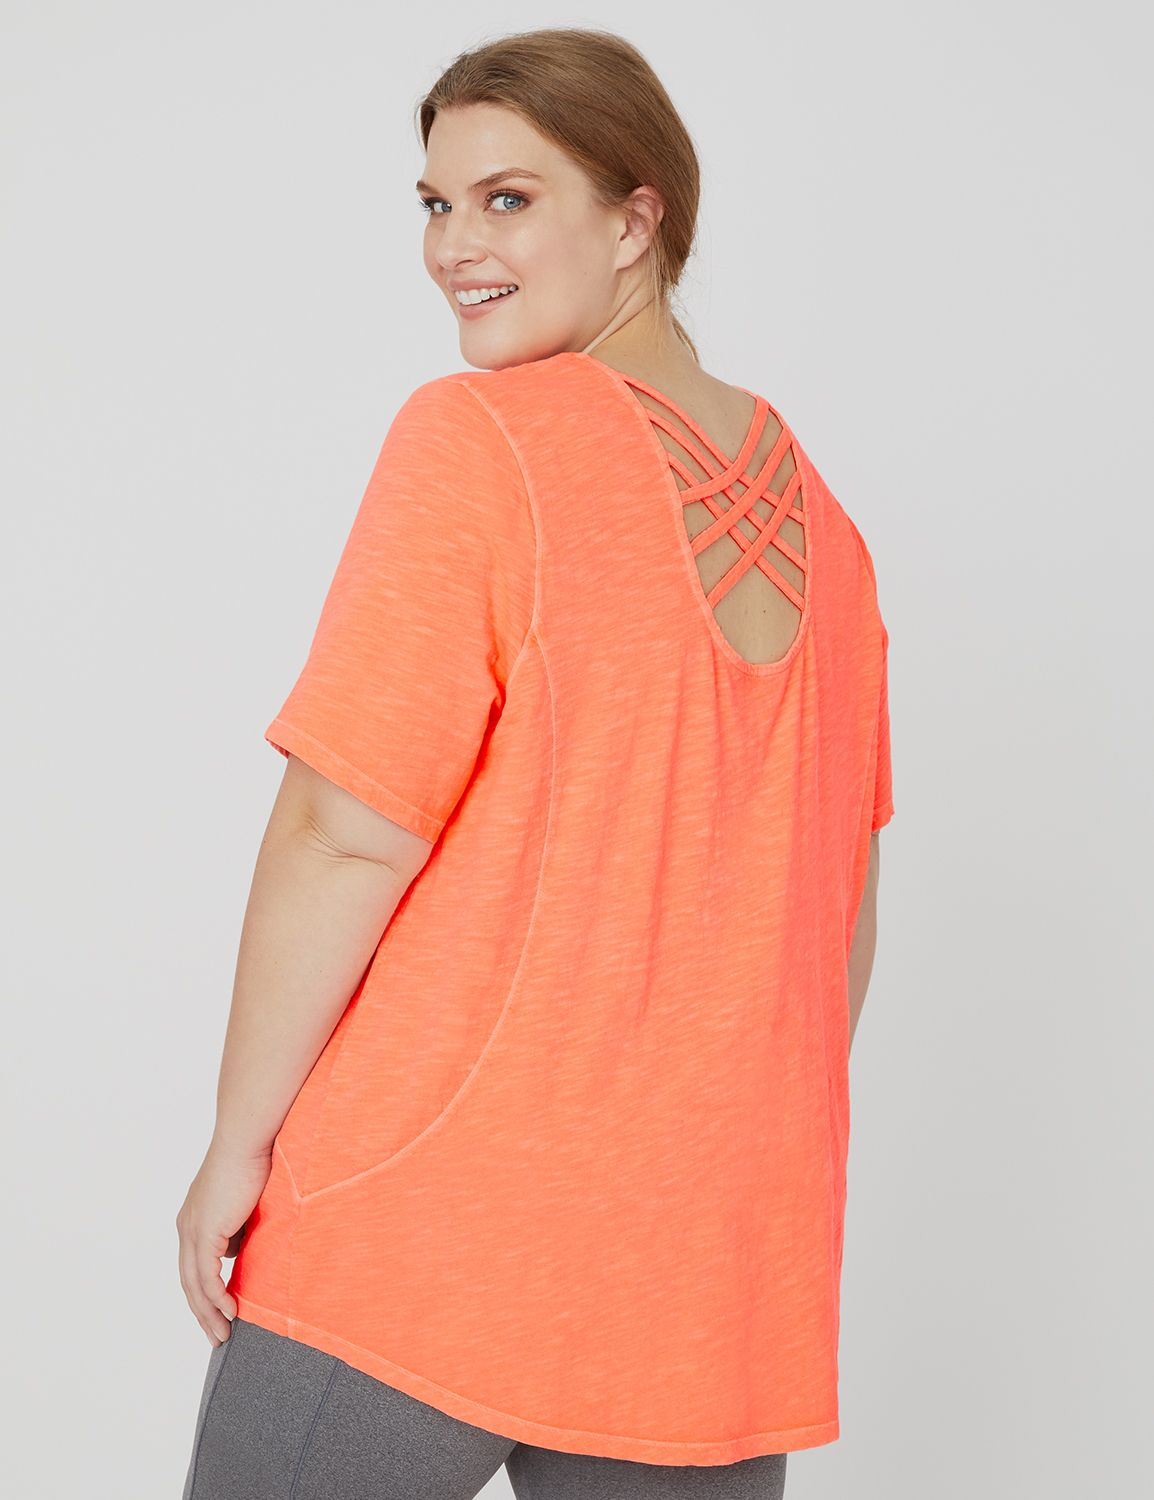 Short-Sleeve Crisscross Active Tee 1088551 SS Criss-Cross Back Top MP-300097721